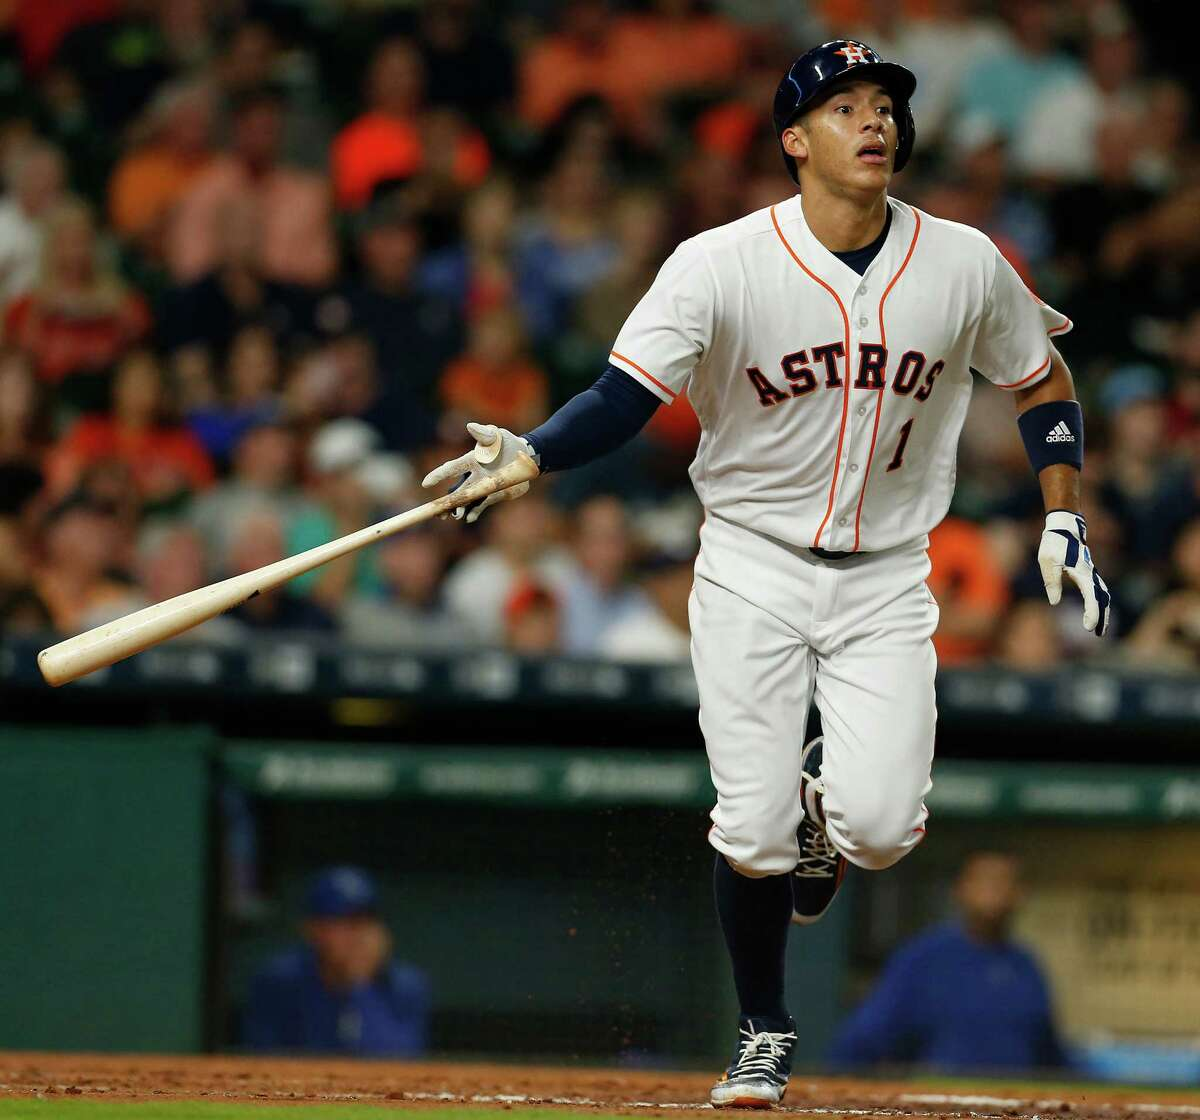 Carlos Correa The 21-year-old was last season's AL Rookie of the Year and is already showing he's not some one-season wonder, having hit three home runs to go with seven RBIs in the early going. He can change a game with one swing and should have plenty of opportunities with three-time All-Star Jose Altuve and George Springer setting the table in front of him.